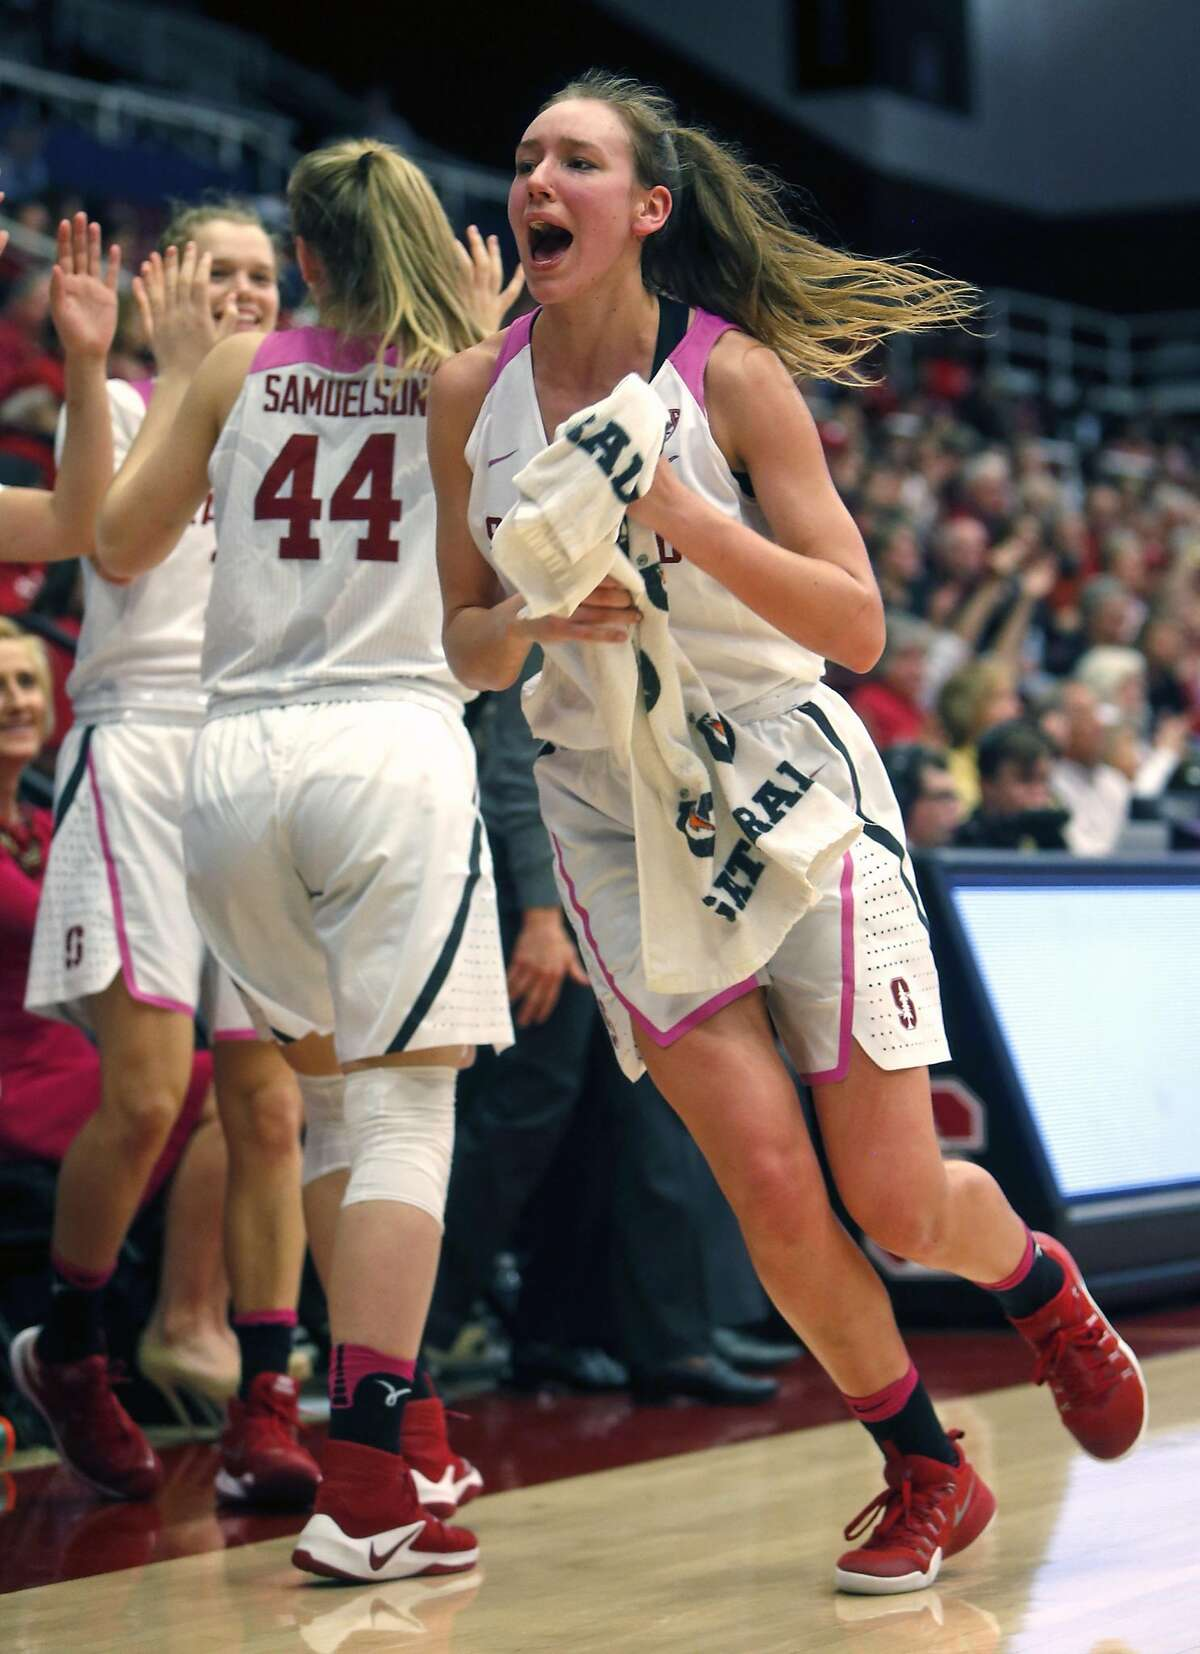 Stanford's Alanna Smith, Brittany McPhee and Karlie Samuelson (44) celebrate a 3-pointer in 4th quarter of Cardinal's 87-51 win over Utah during PAC 12 Women's basketball game at Maples Pavilion in Stanford, Calif., on Sunday, February 12, 2017.